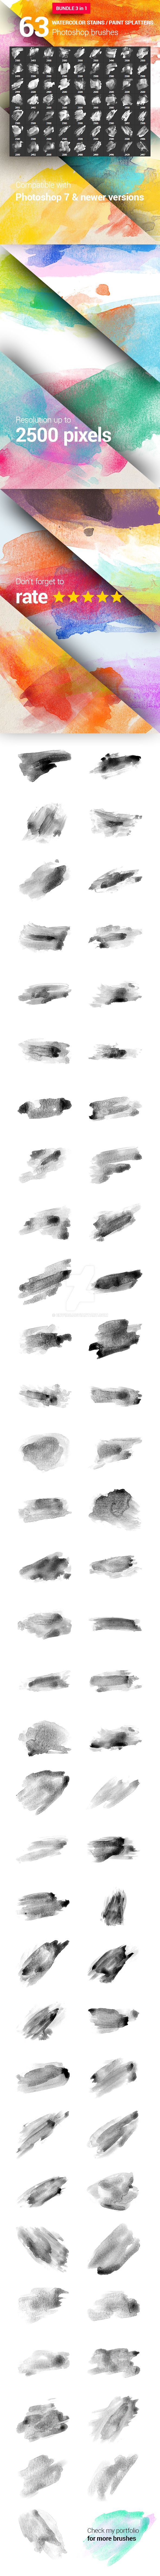 63 Watercolor Paint Stains Photoshop Brushes by env1ro